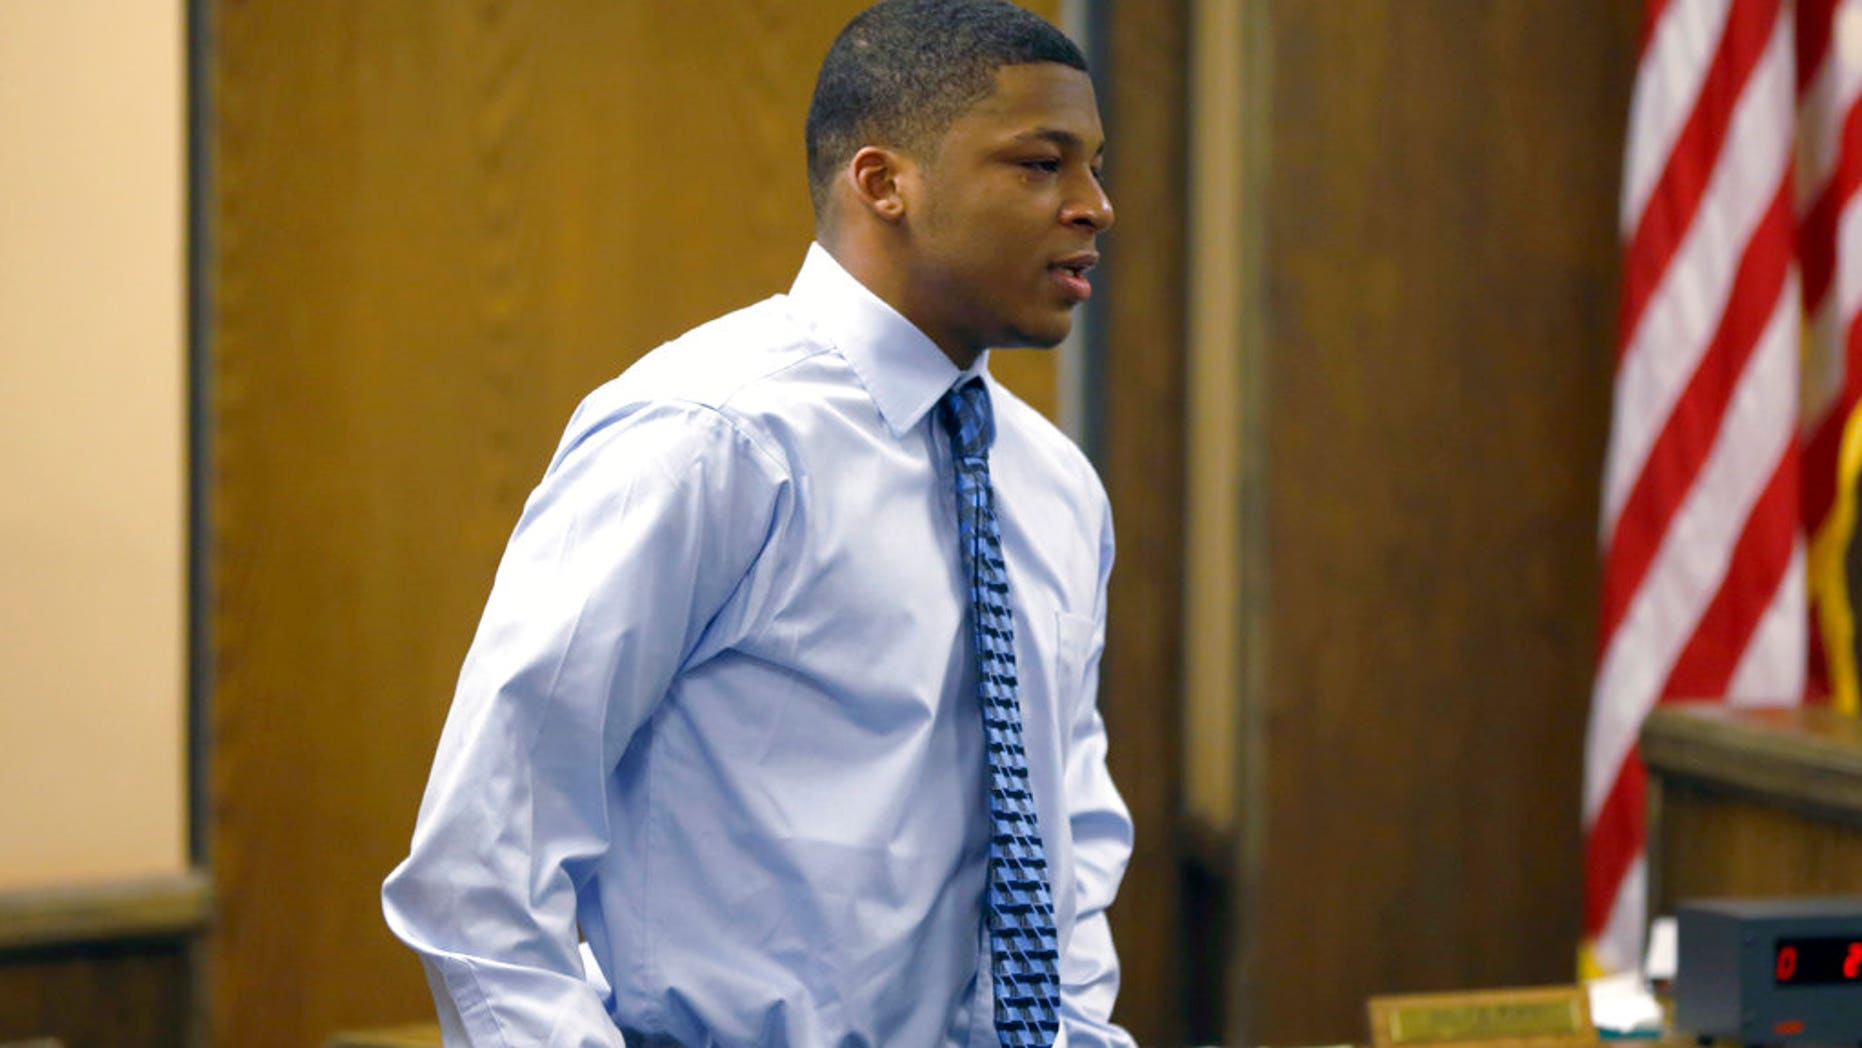 Ma'Lik Richmond, a Steubenville High School football player convicted of raping a teenage girl in 2012.